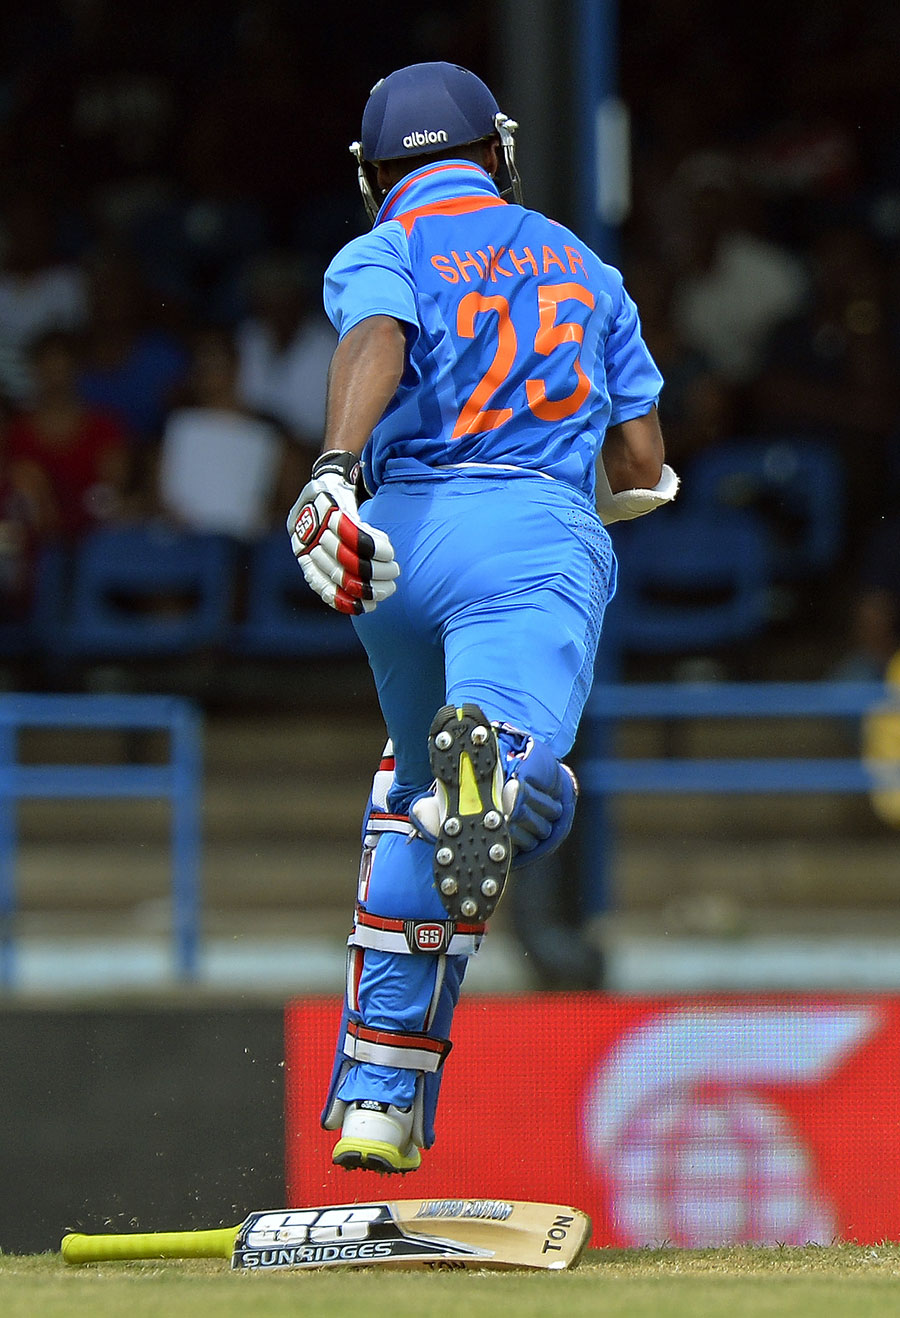 Shikhar-Dhawan-West-Indies-vs-India-Tri-Series-2013